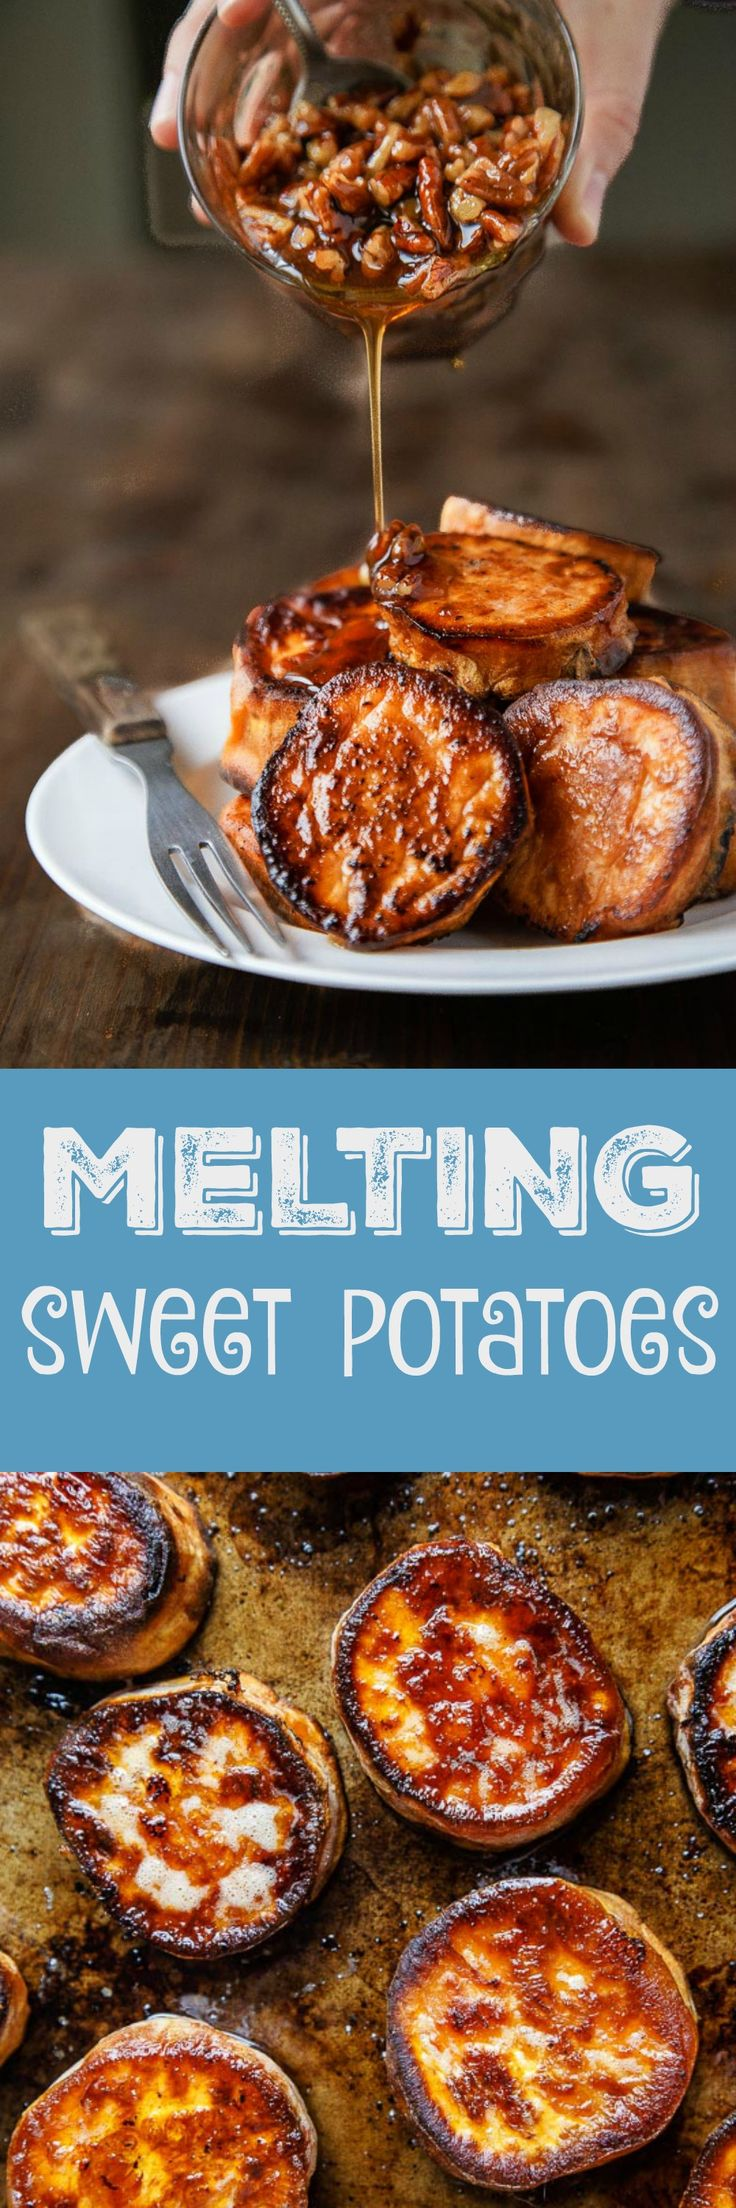 Melting potatoes, sweet potato version! The BEST oven roasted sweet potato recipe.